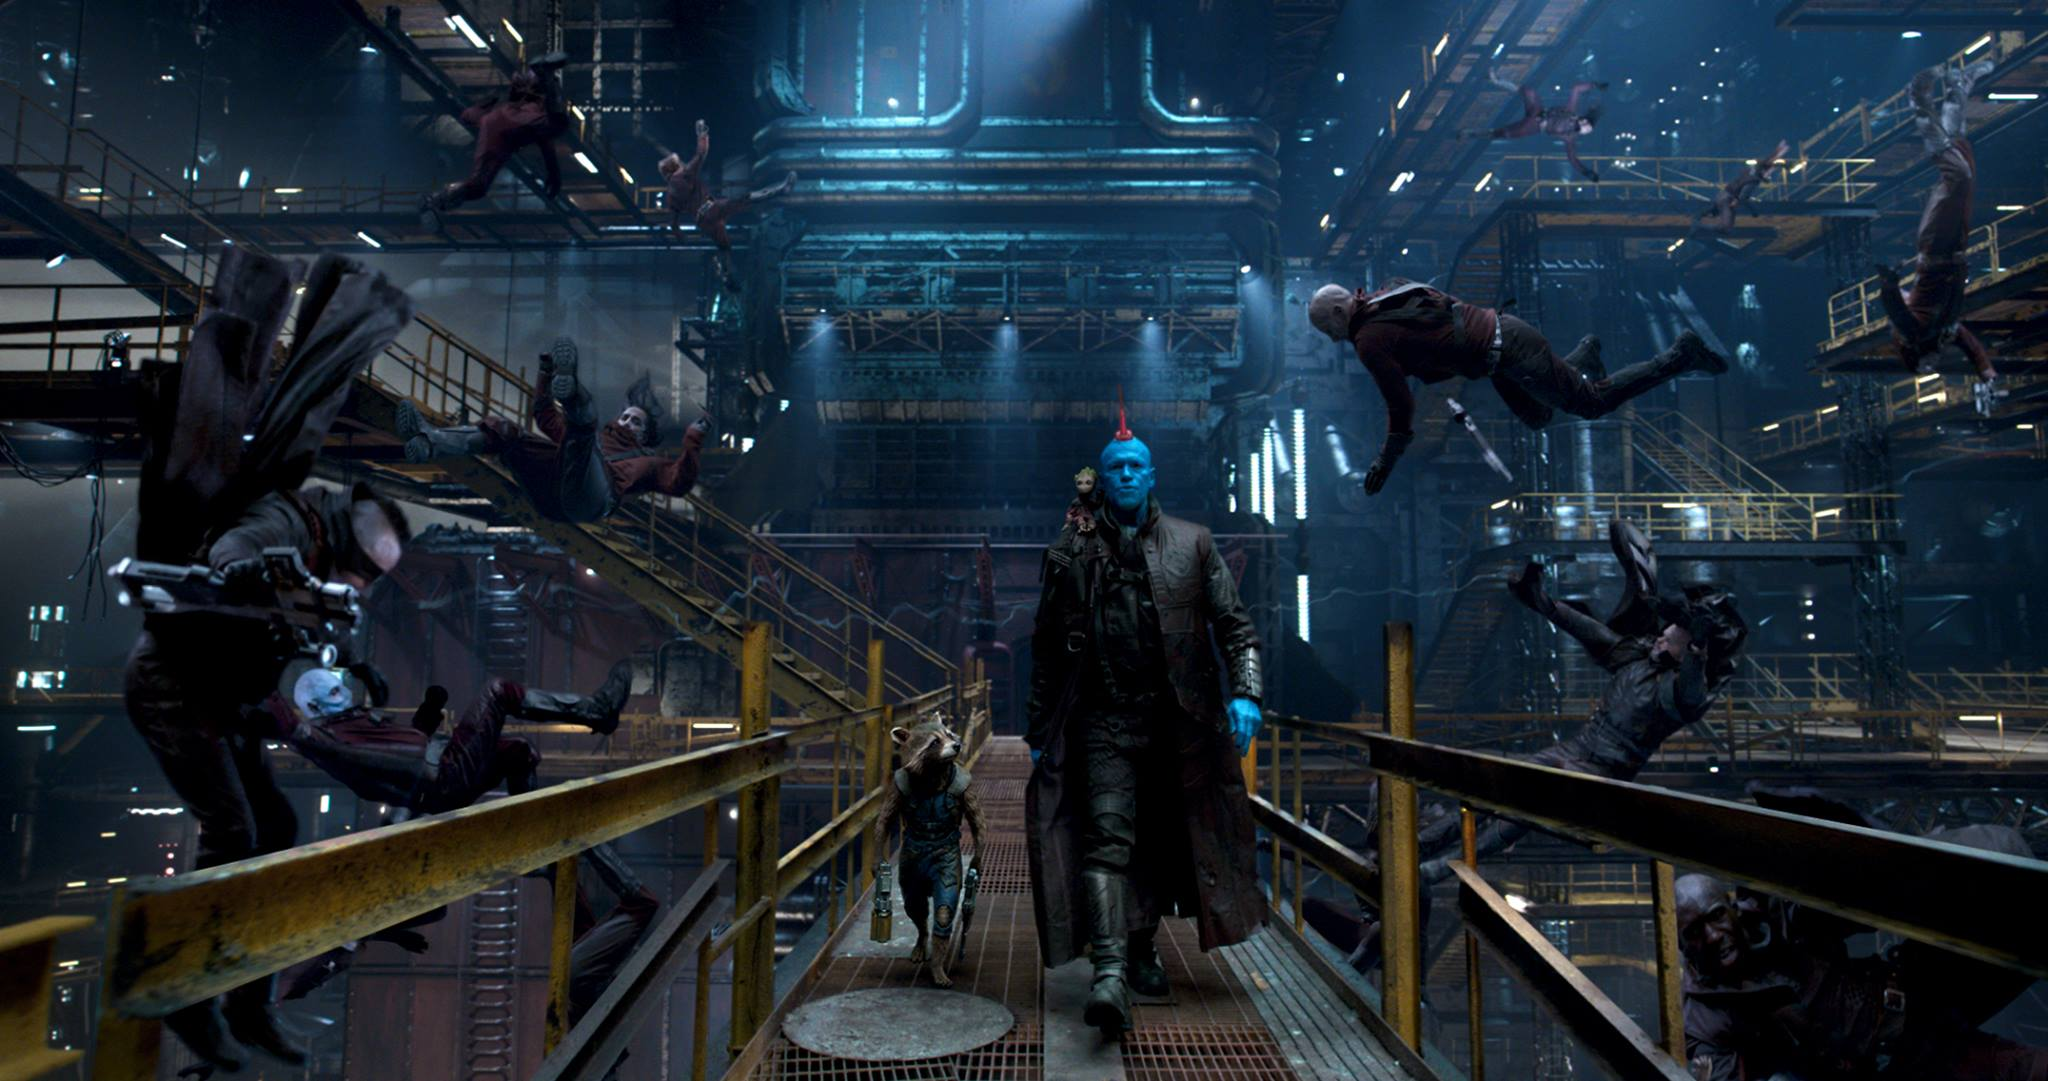 Guardians of the Galaxy: James Gunn sequel has explosive opening weekend